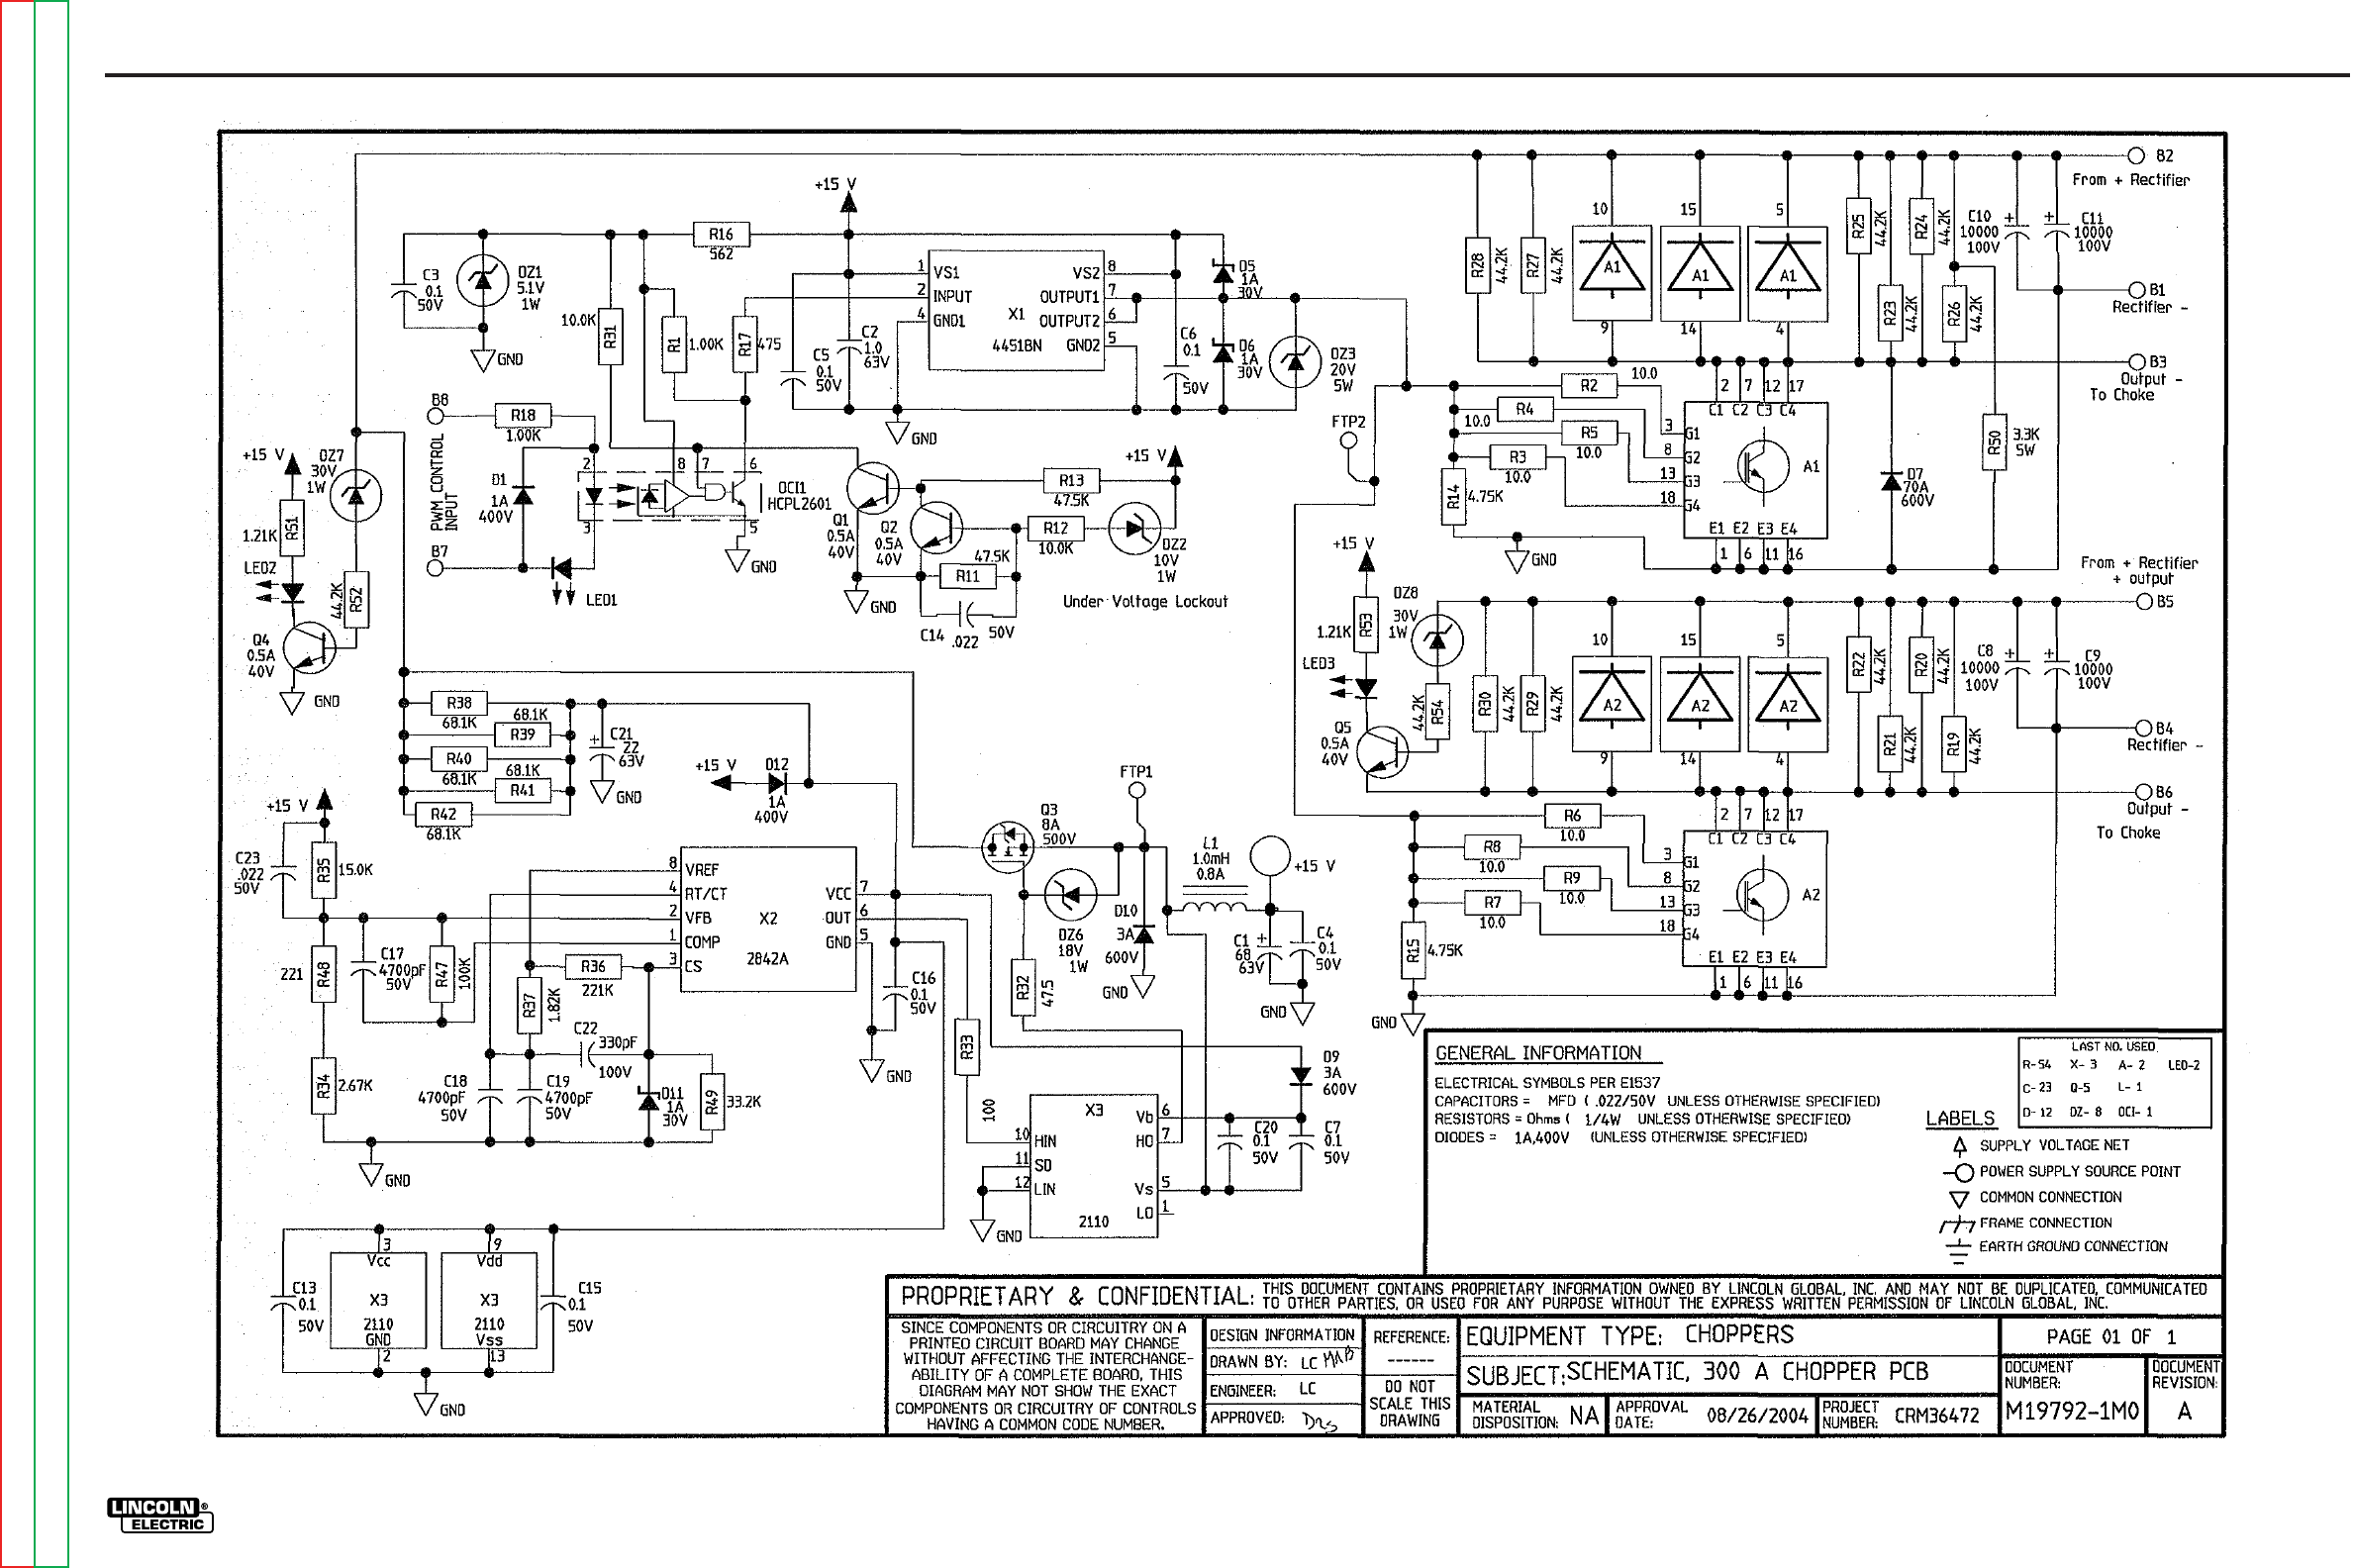 Lincoln Electric Welder Wiring Diagram on wiring diagram for 7 pin trailer plug